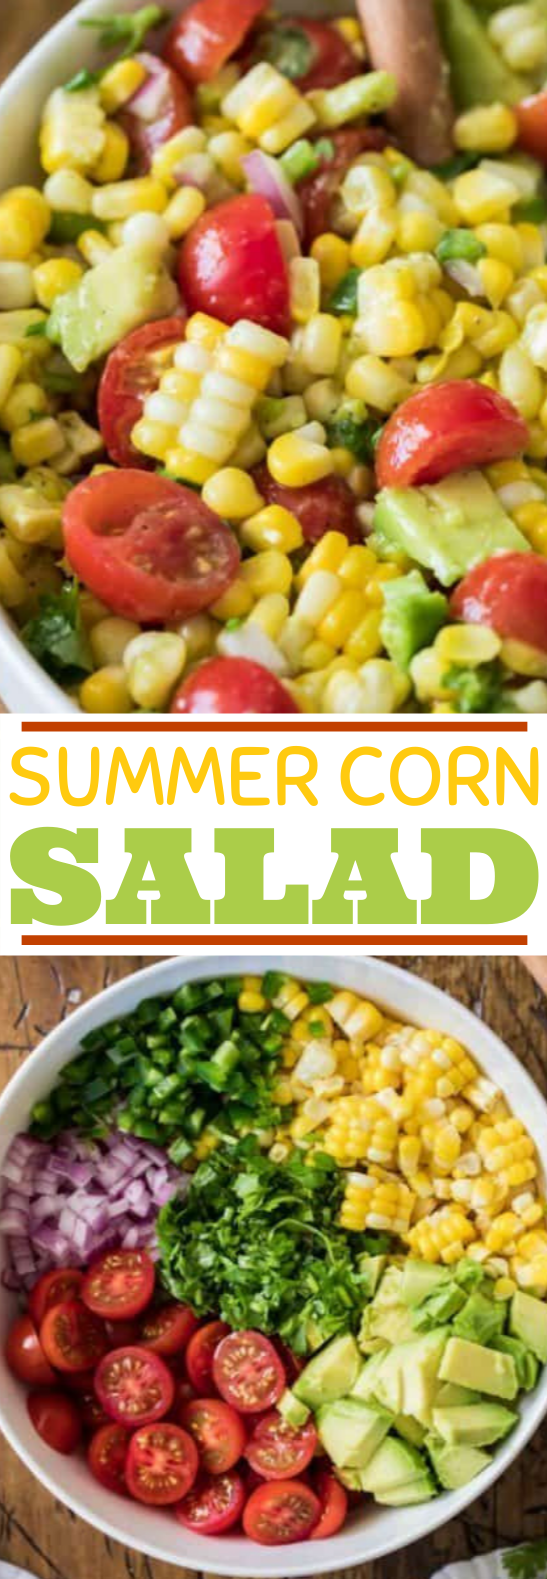 Summer Corn Salad #vegan #salad #glutenfree #healthy #veggies